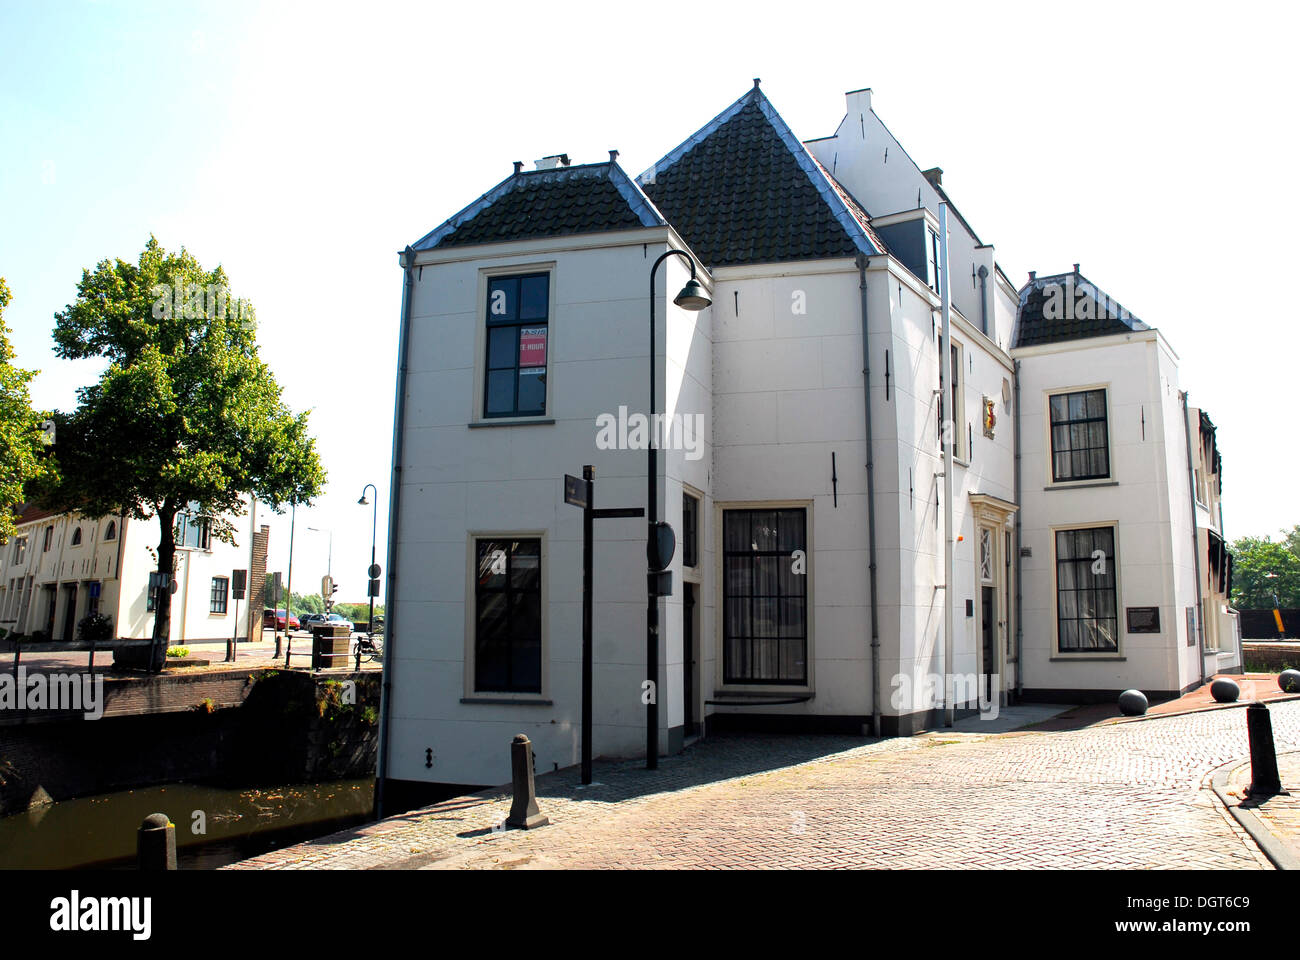 Tolhuis, historic customs house in Gouda, Zuid-Holland, South Holland, the Netherlands, Europe - Stock Image